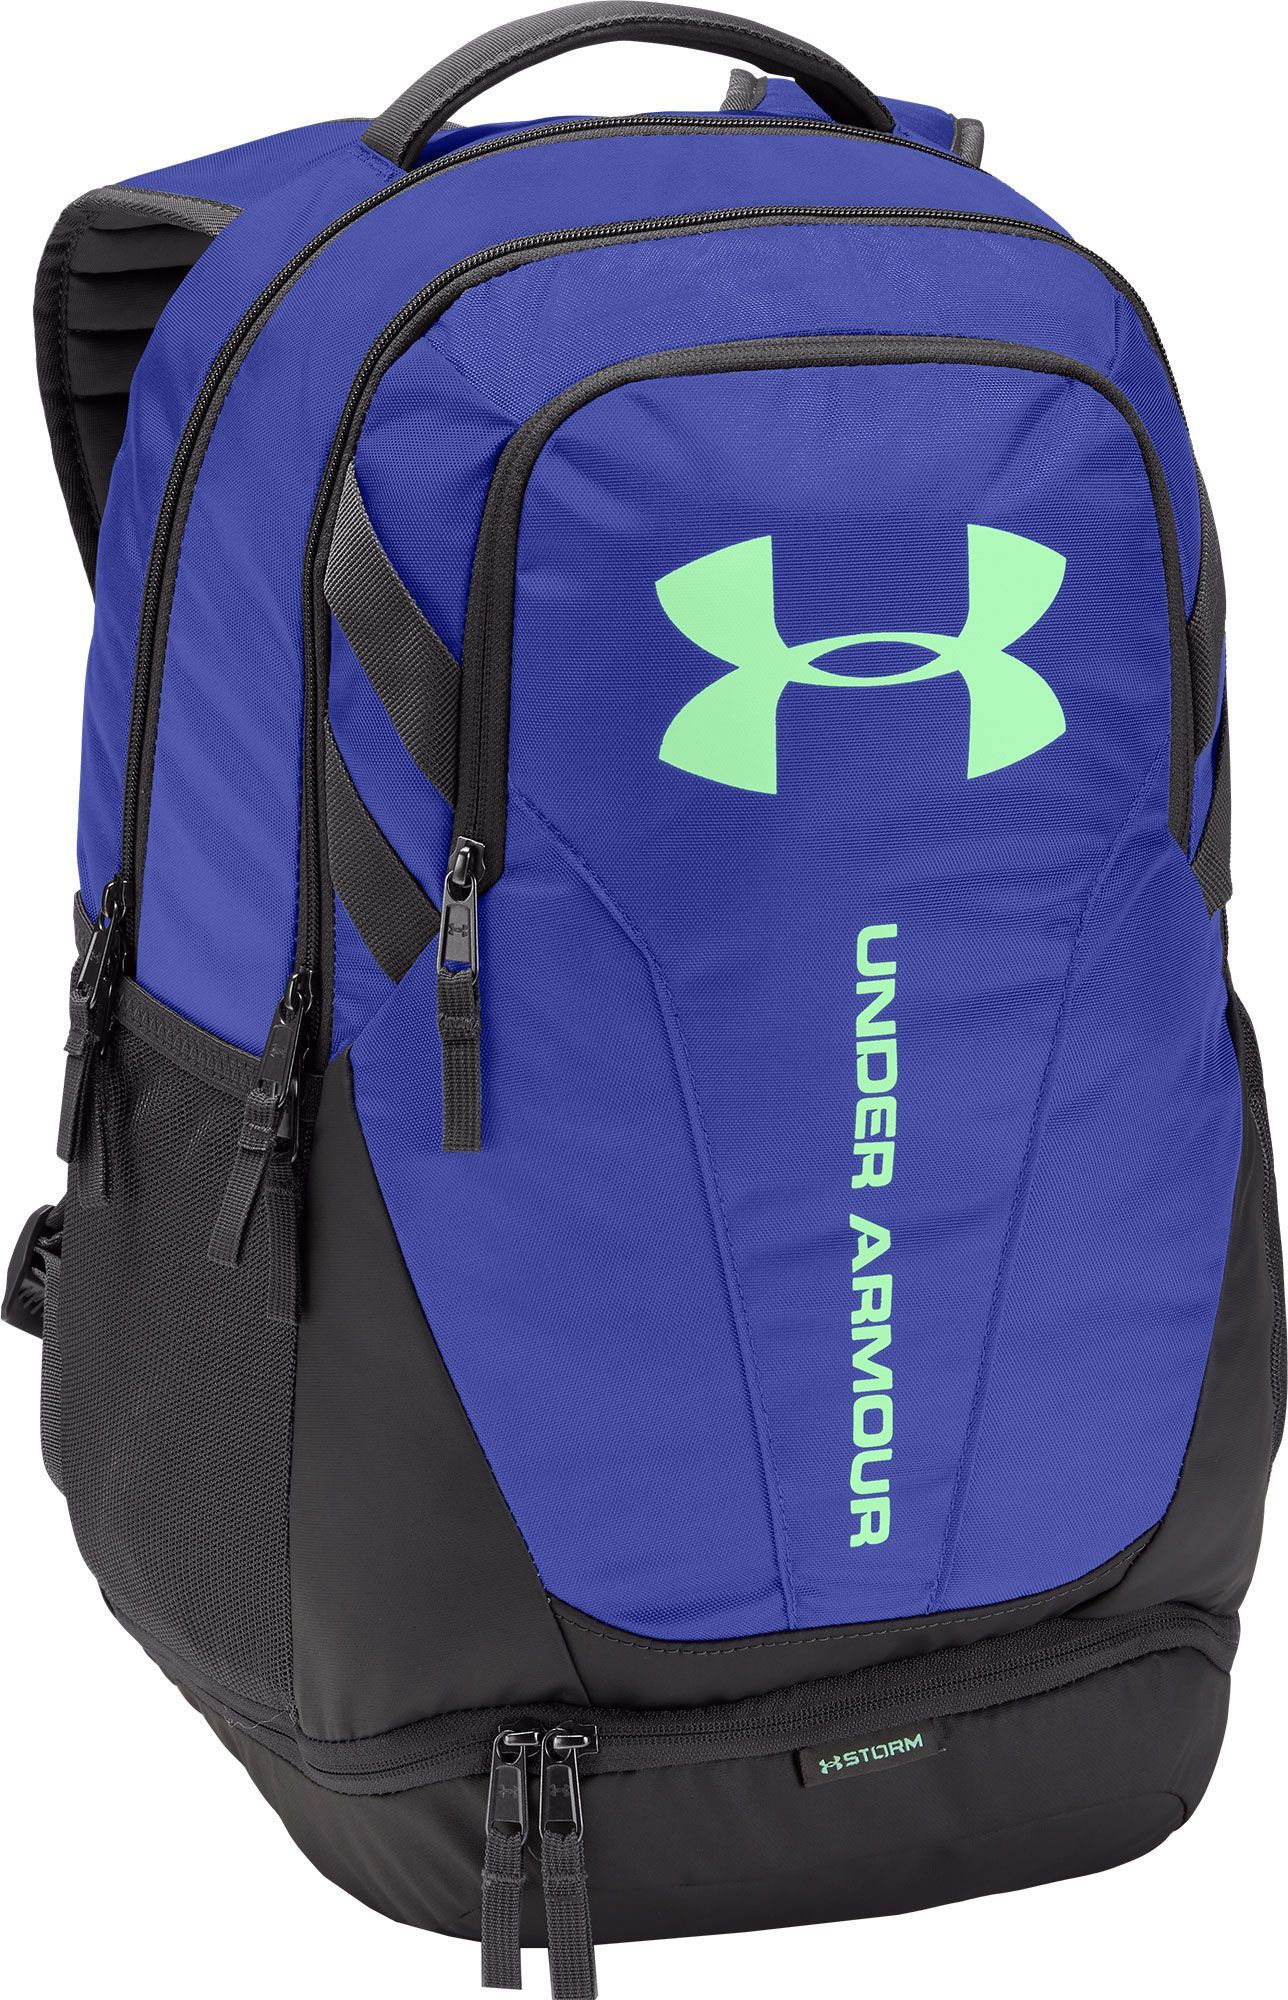 4824779fc025 Under Armour Hustle 3.0 Backpack